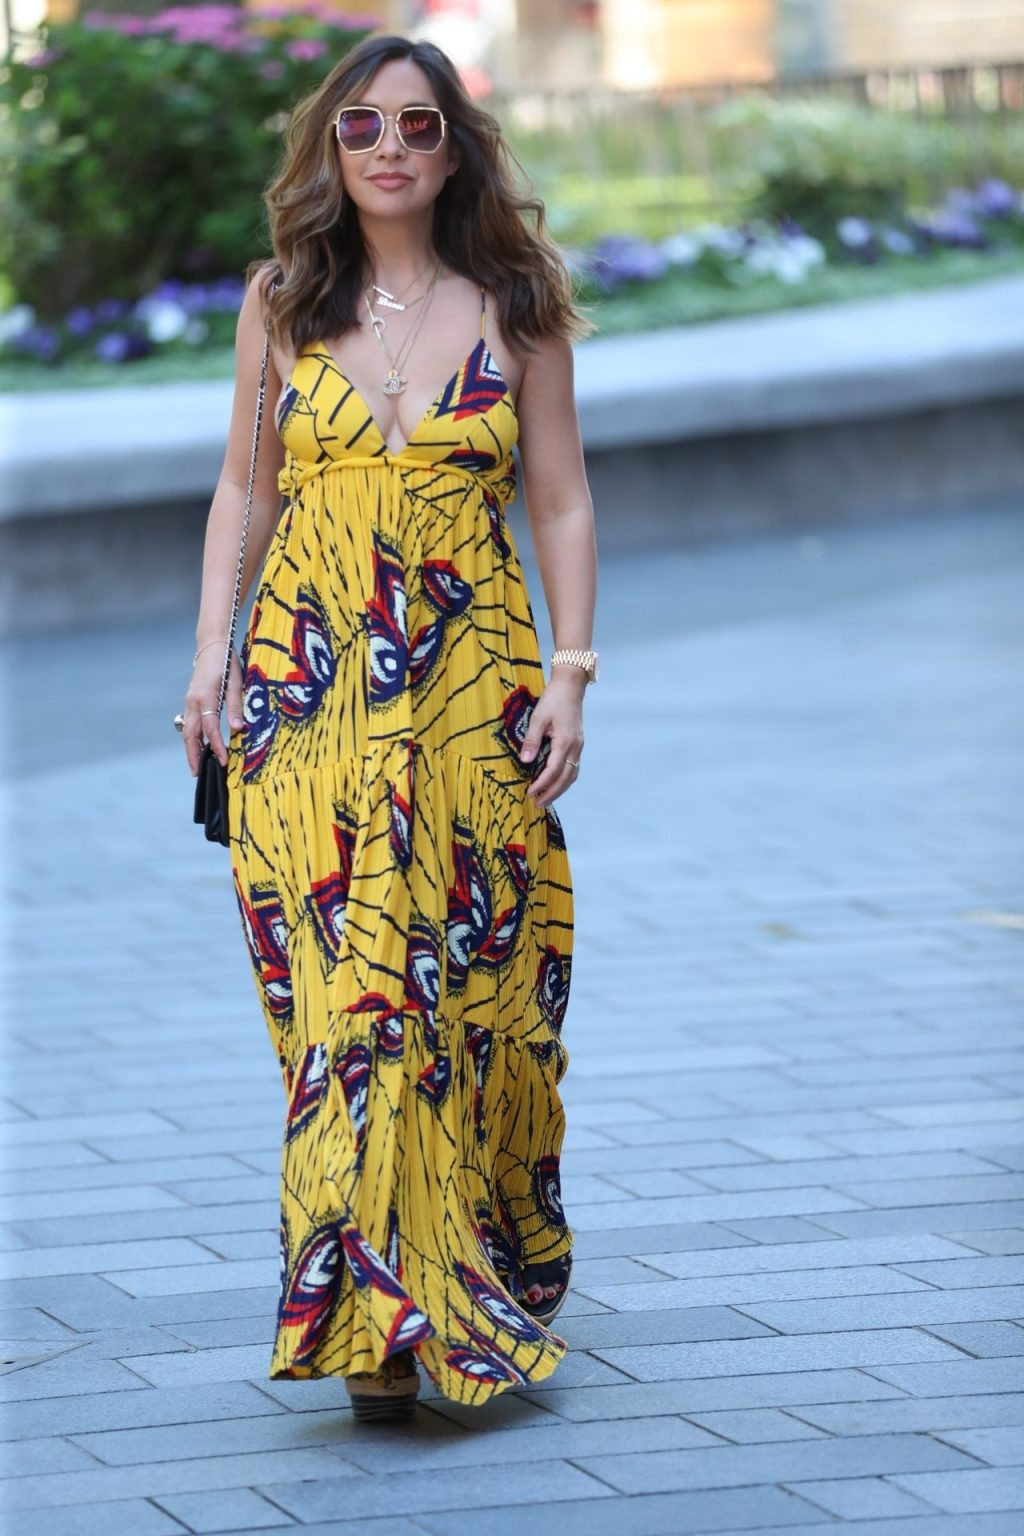 Myleene Klass Shows Off Her Cleavage in a Maxi Dress in London (15 Photos)